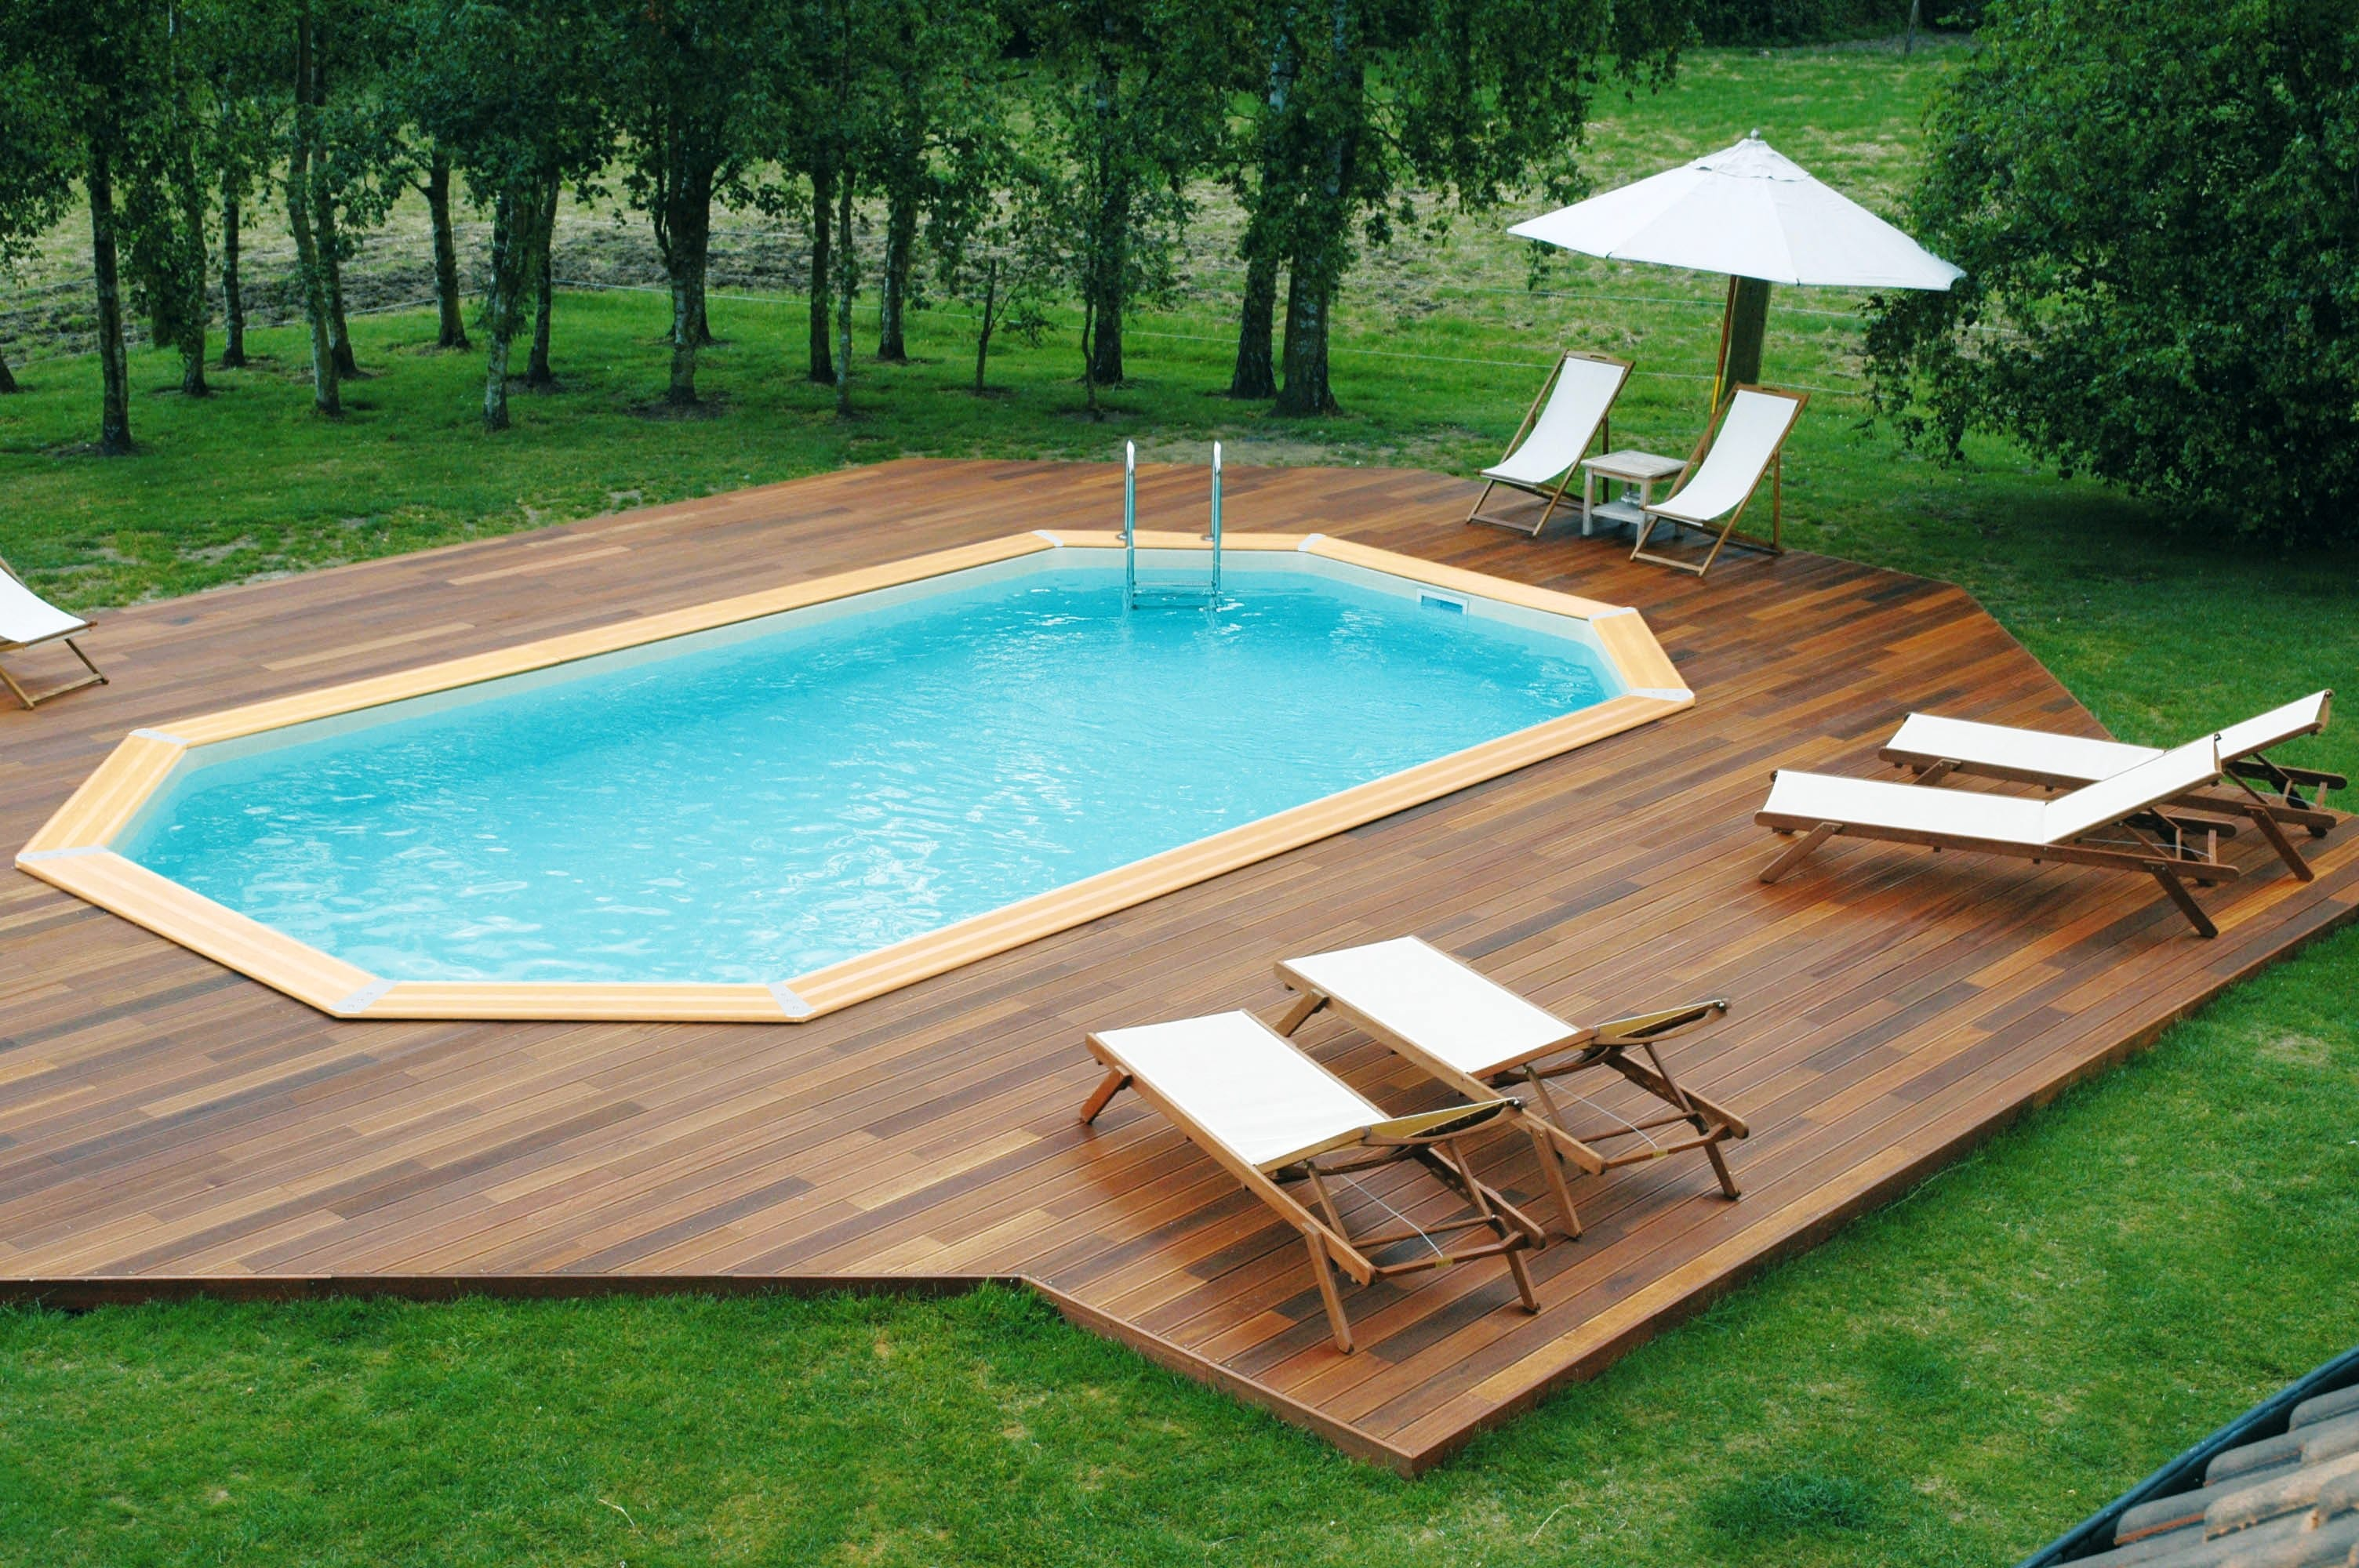 Poele Fabrication Francaise Piscine / Spa / Sauna - Bonnin